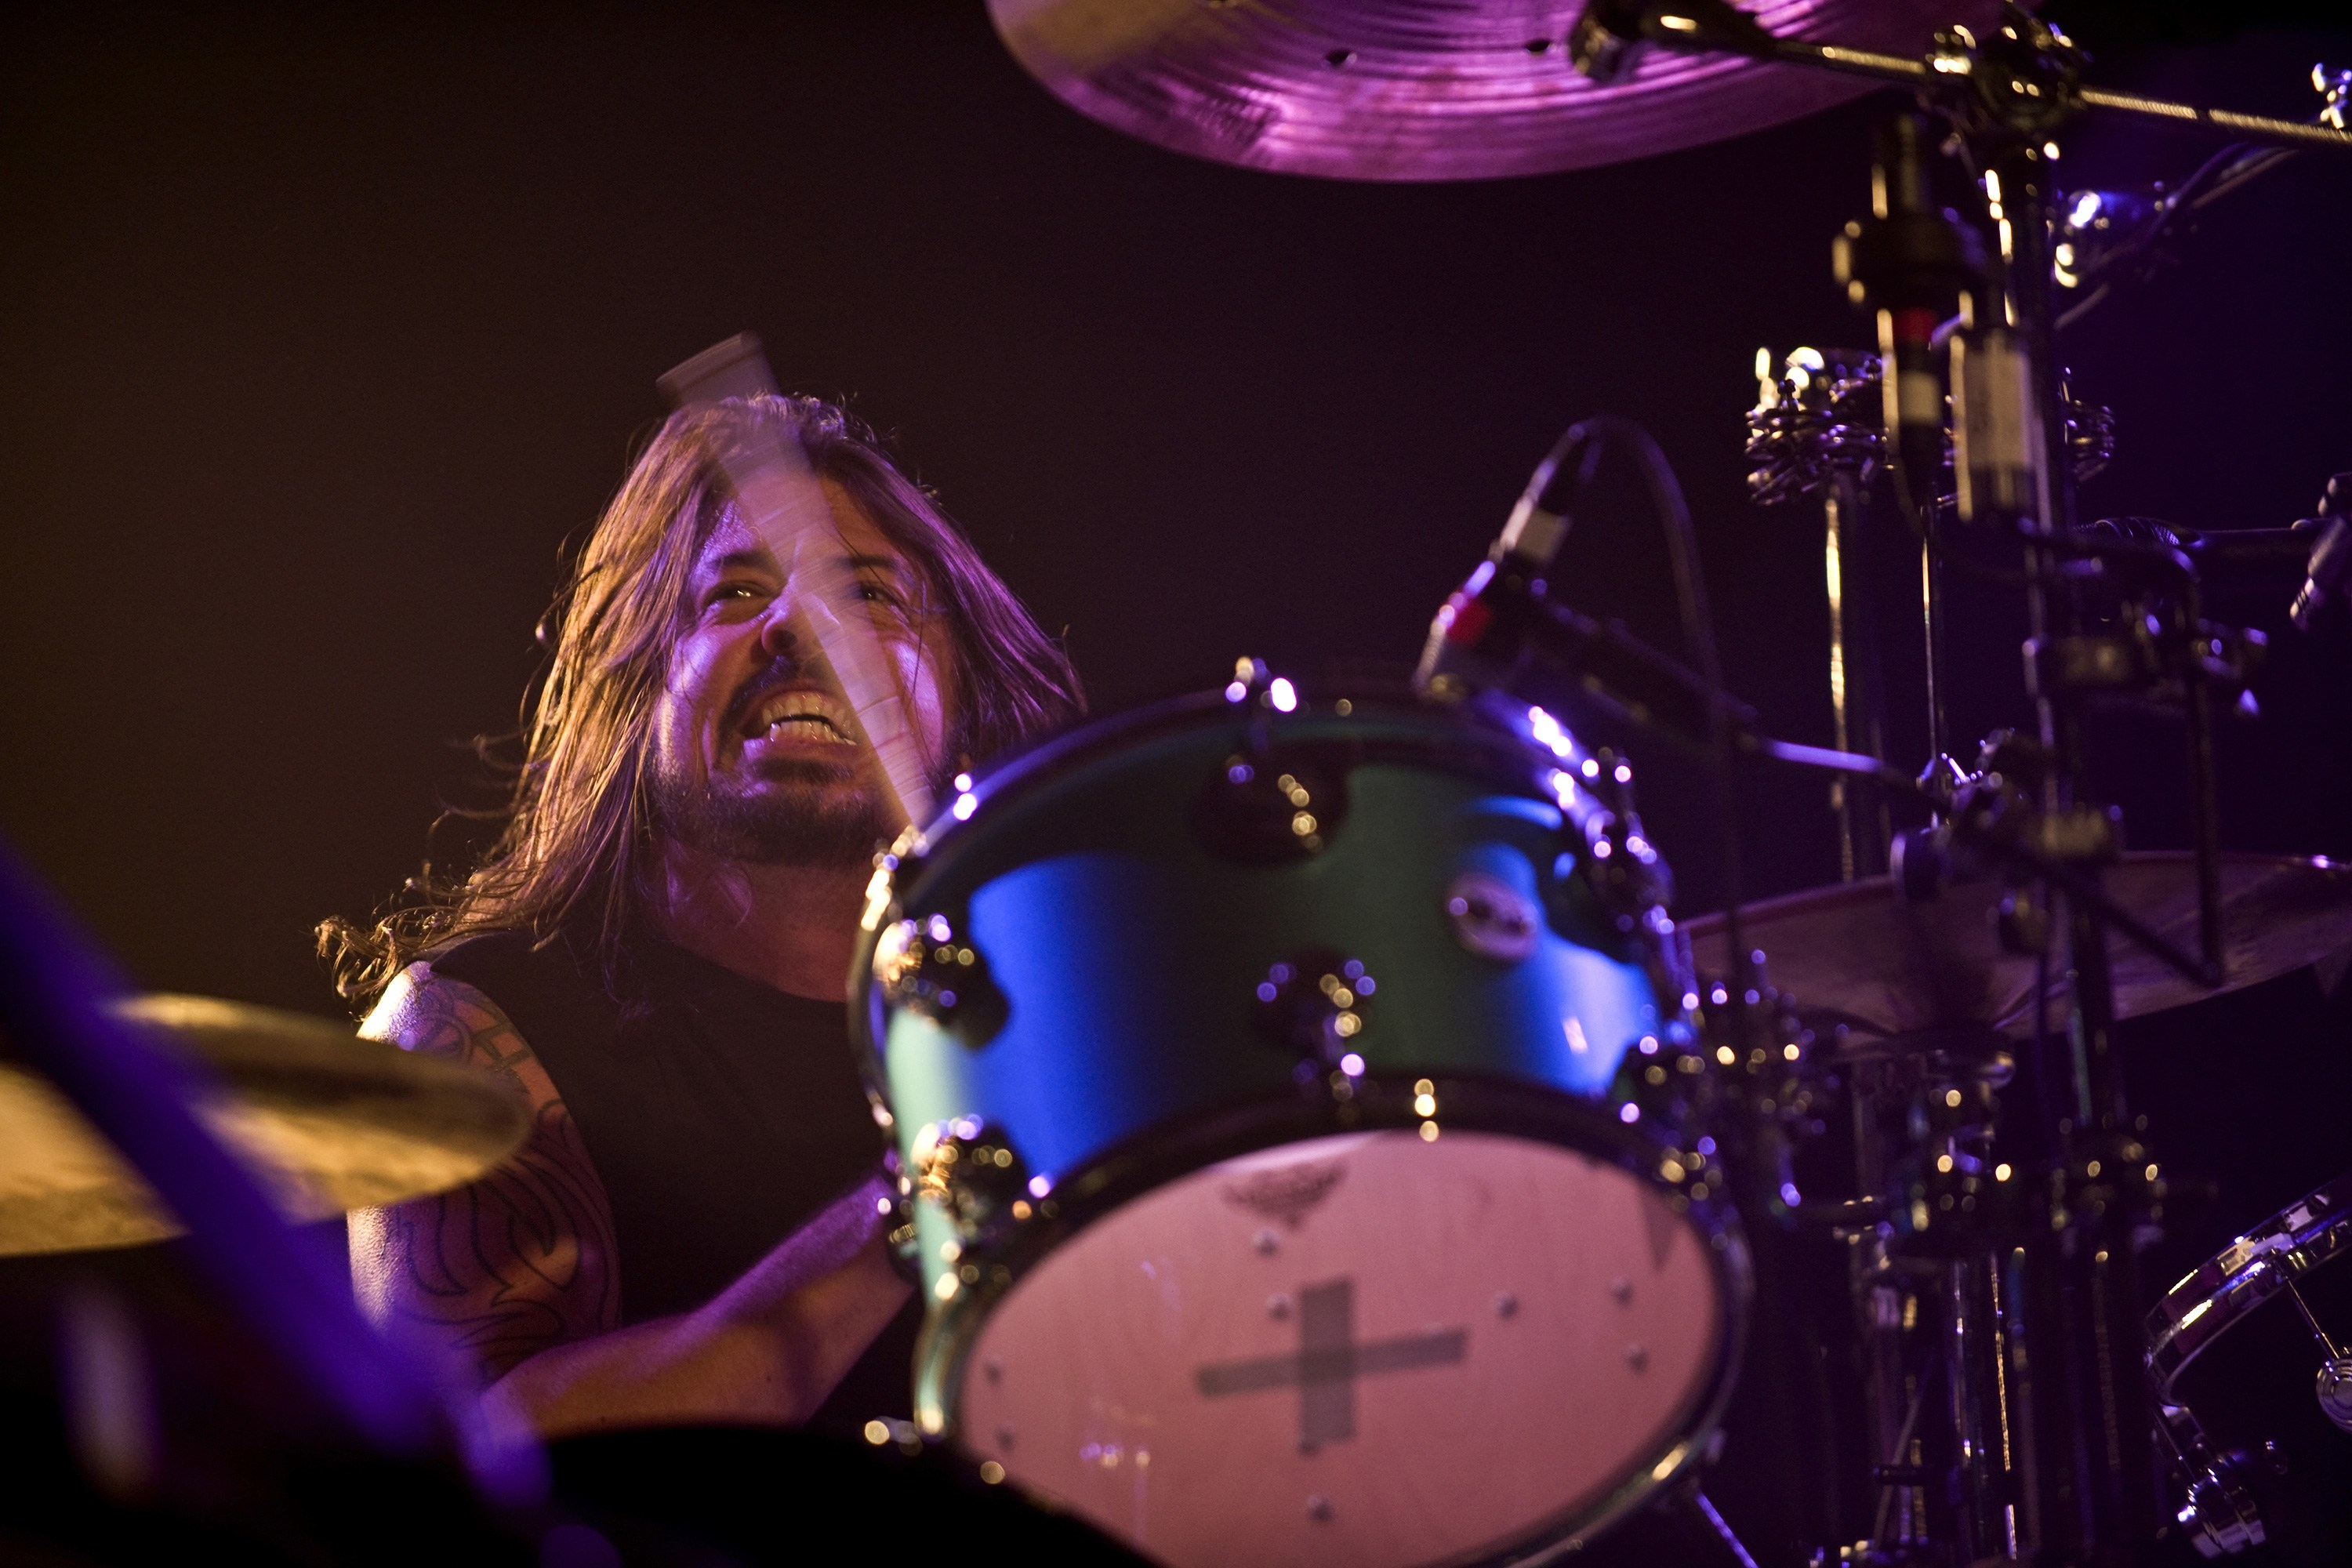 Dave Grohl - Drums